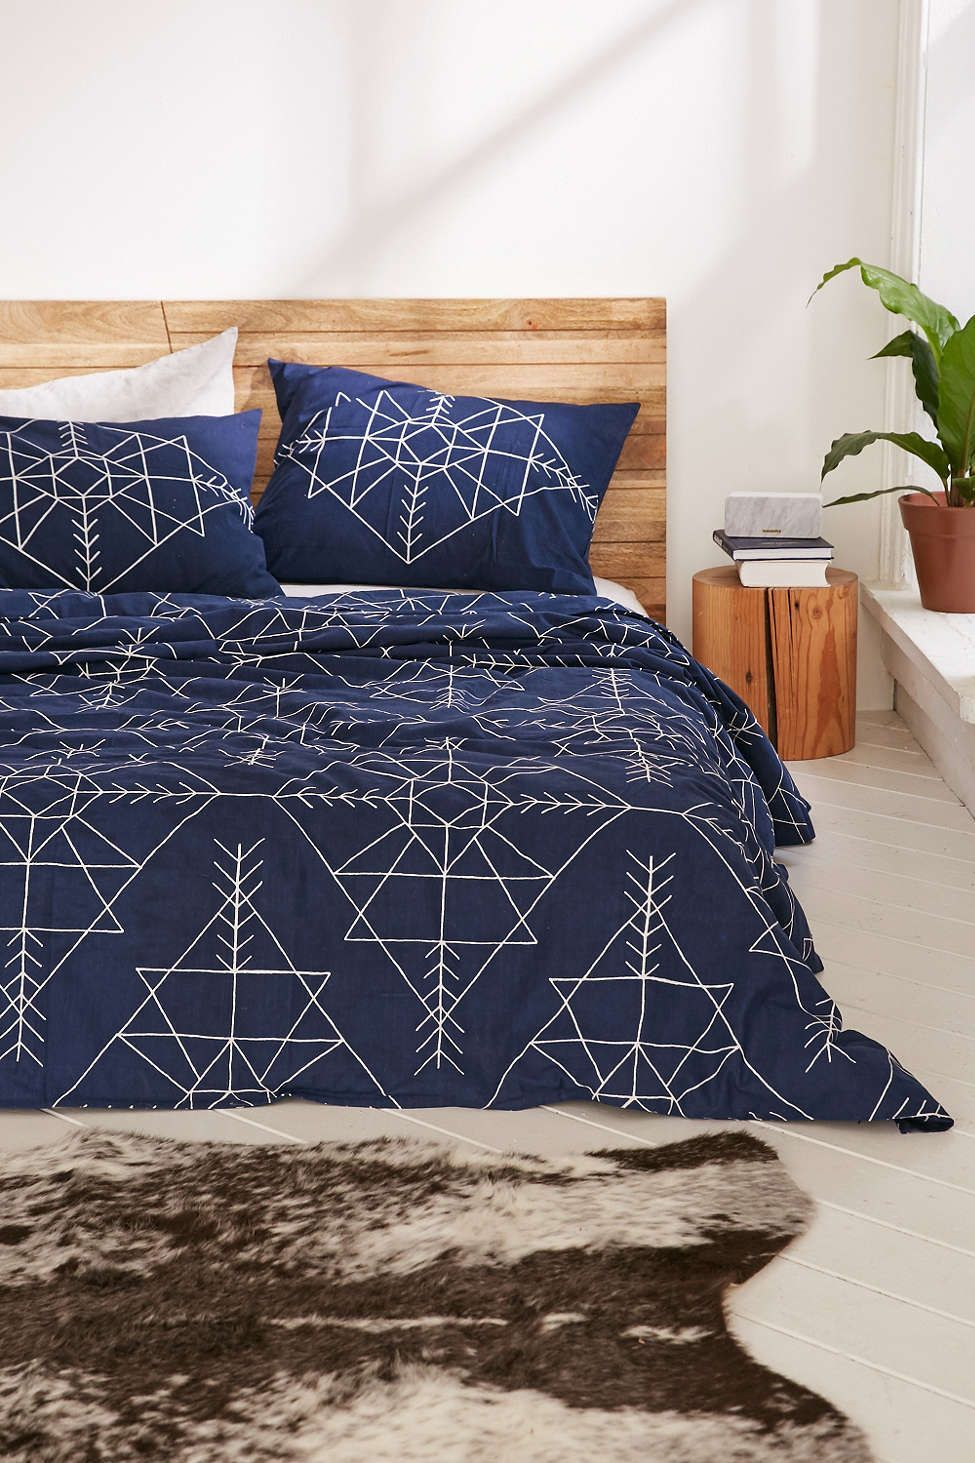 aztec boy coral comforter zone interesting kpop urban chevron pop sheets set bedroom shop tie quilts animal covers walmartcom art toddler sets outfitters youtube seventeen in duvet single teenage bag tribal like ruched roxy your comforters bedding for teens girl girls dye teen